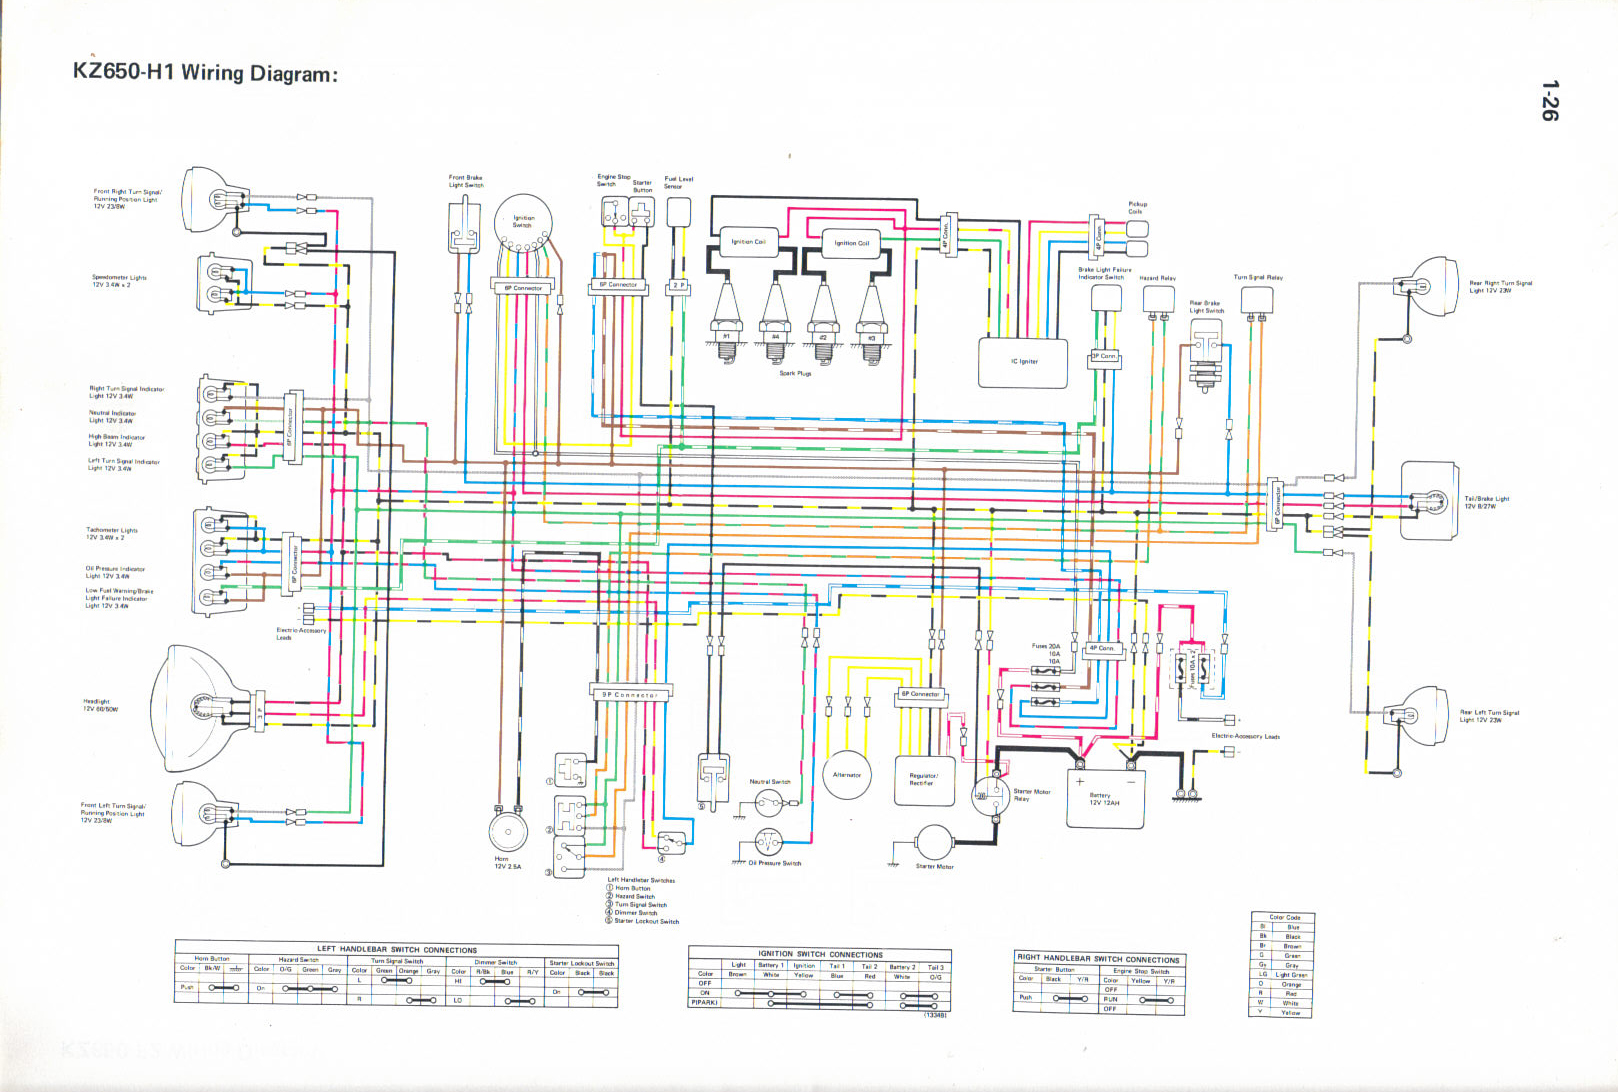 Kawasaki Kz650 B2 Wiring Diagram Electrical Diagrams 2004 650 K Z H1 Enthusiast U2022 Rh Rasalibre Co 1979